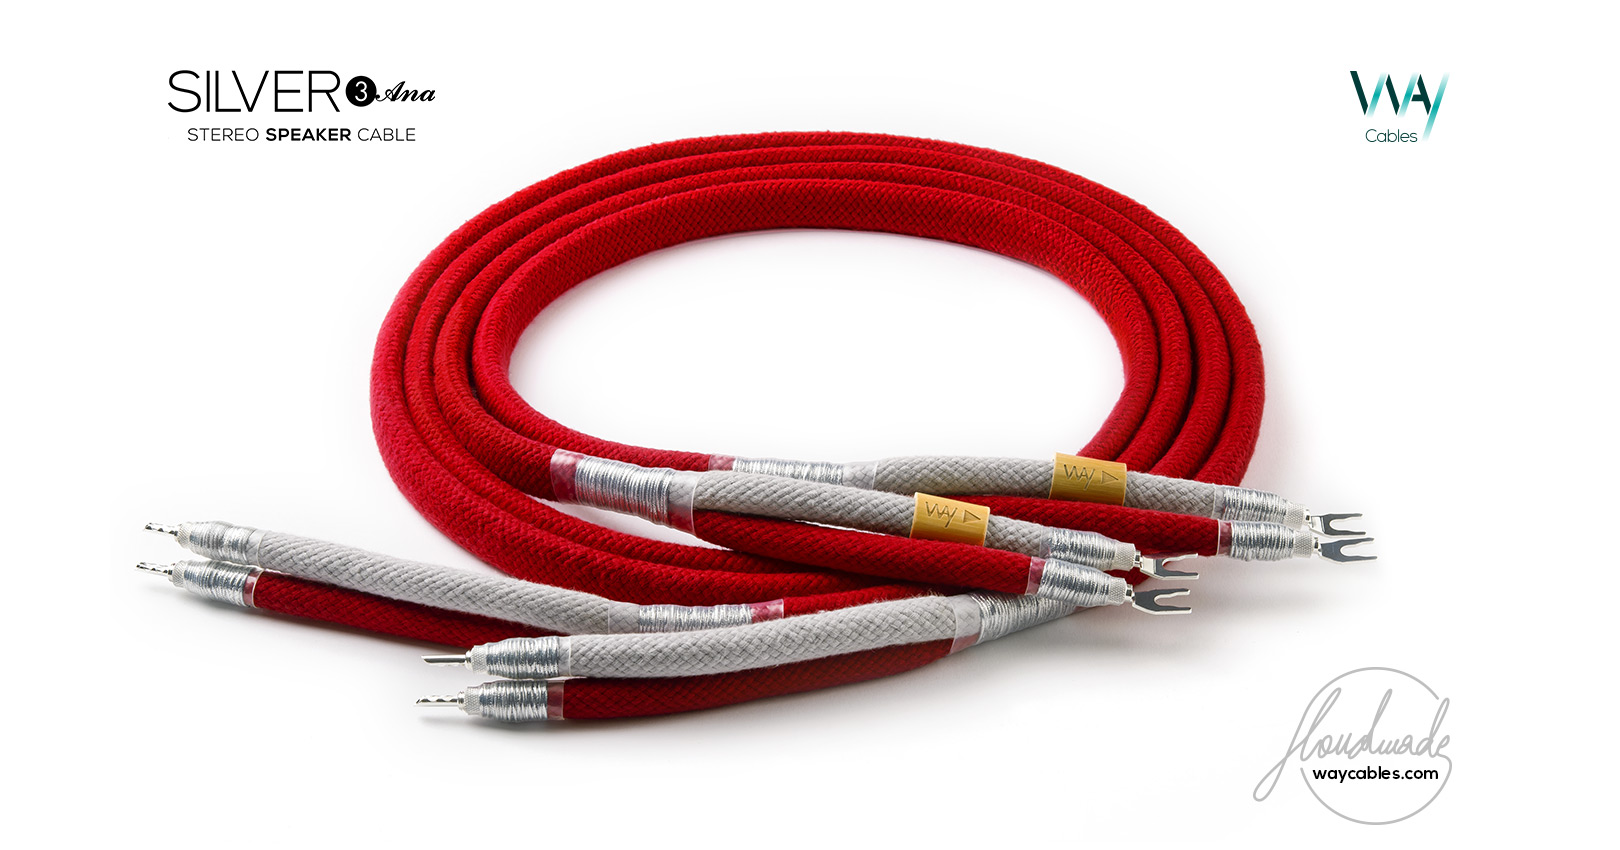 WAY Cables > High-End Speaker Cables & Speaker Jumpers